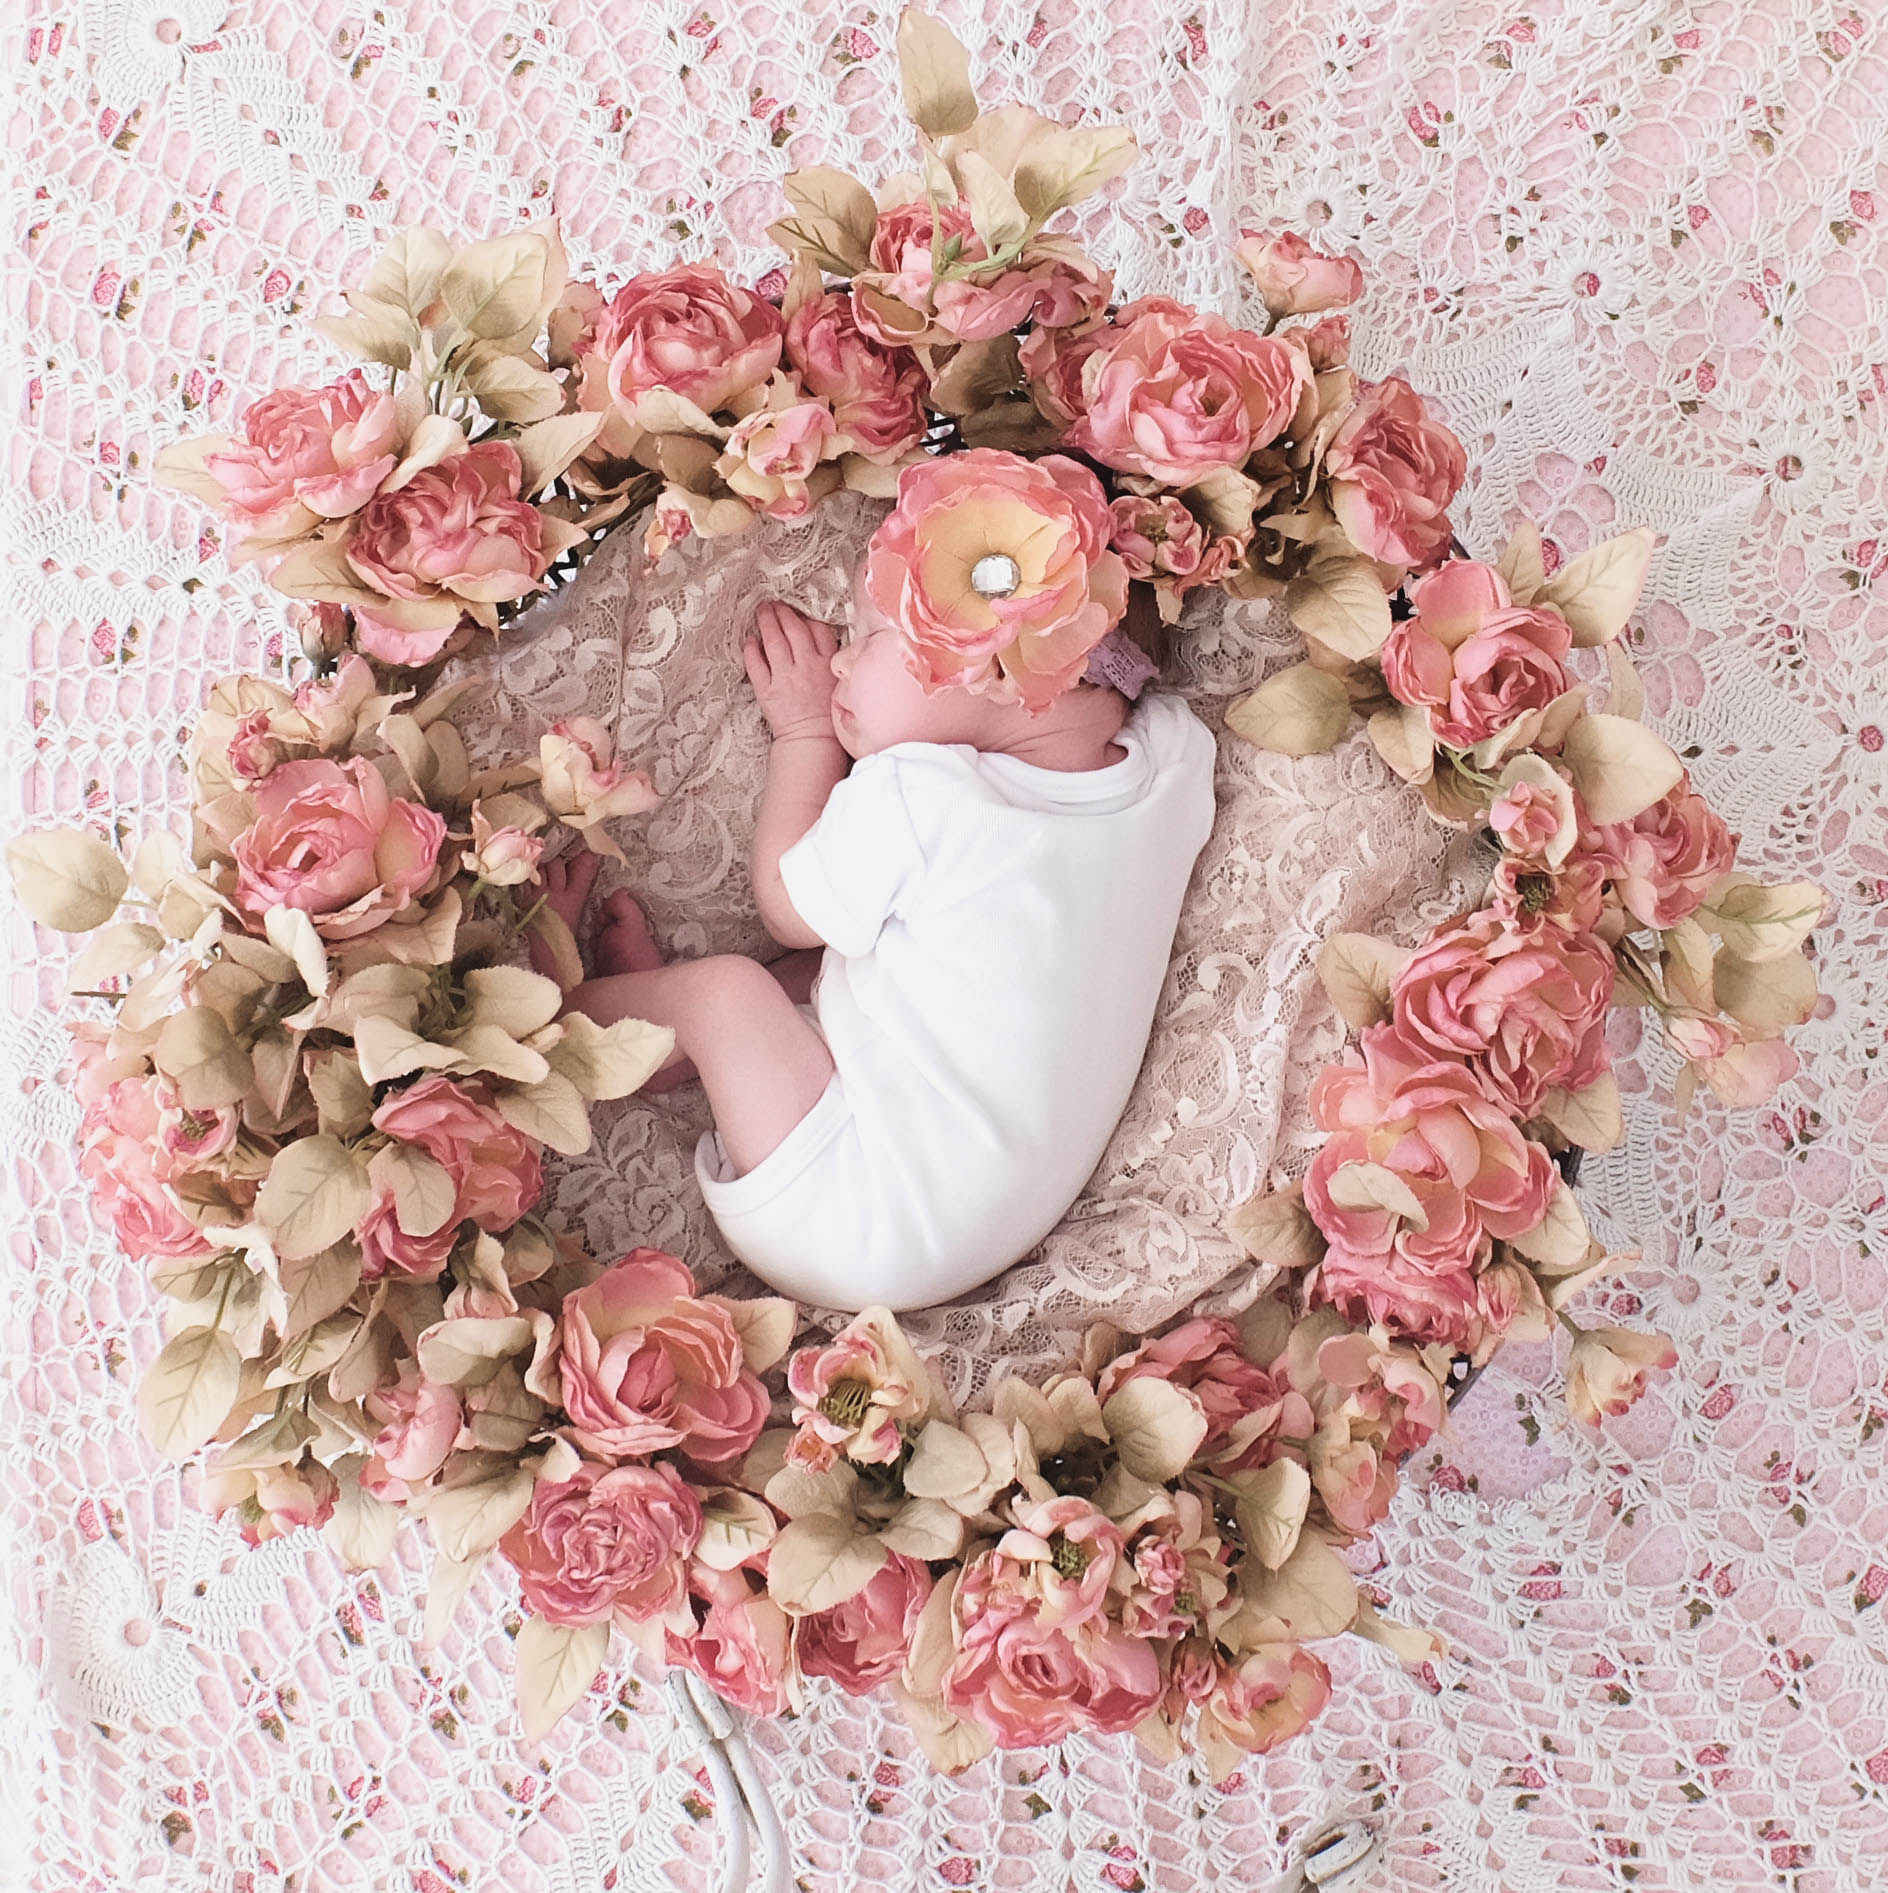 baby sleeping in a circle of flowers